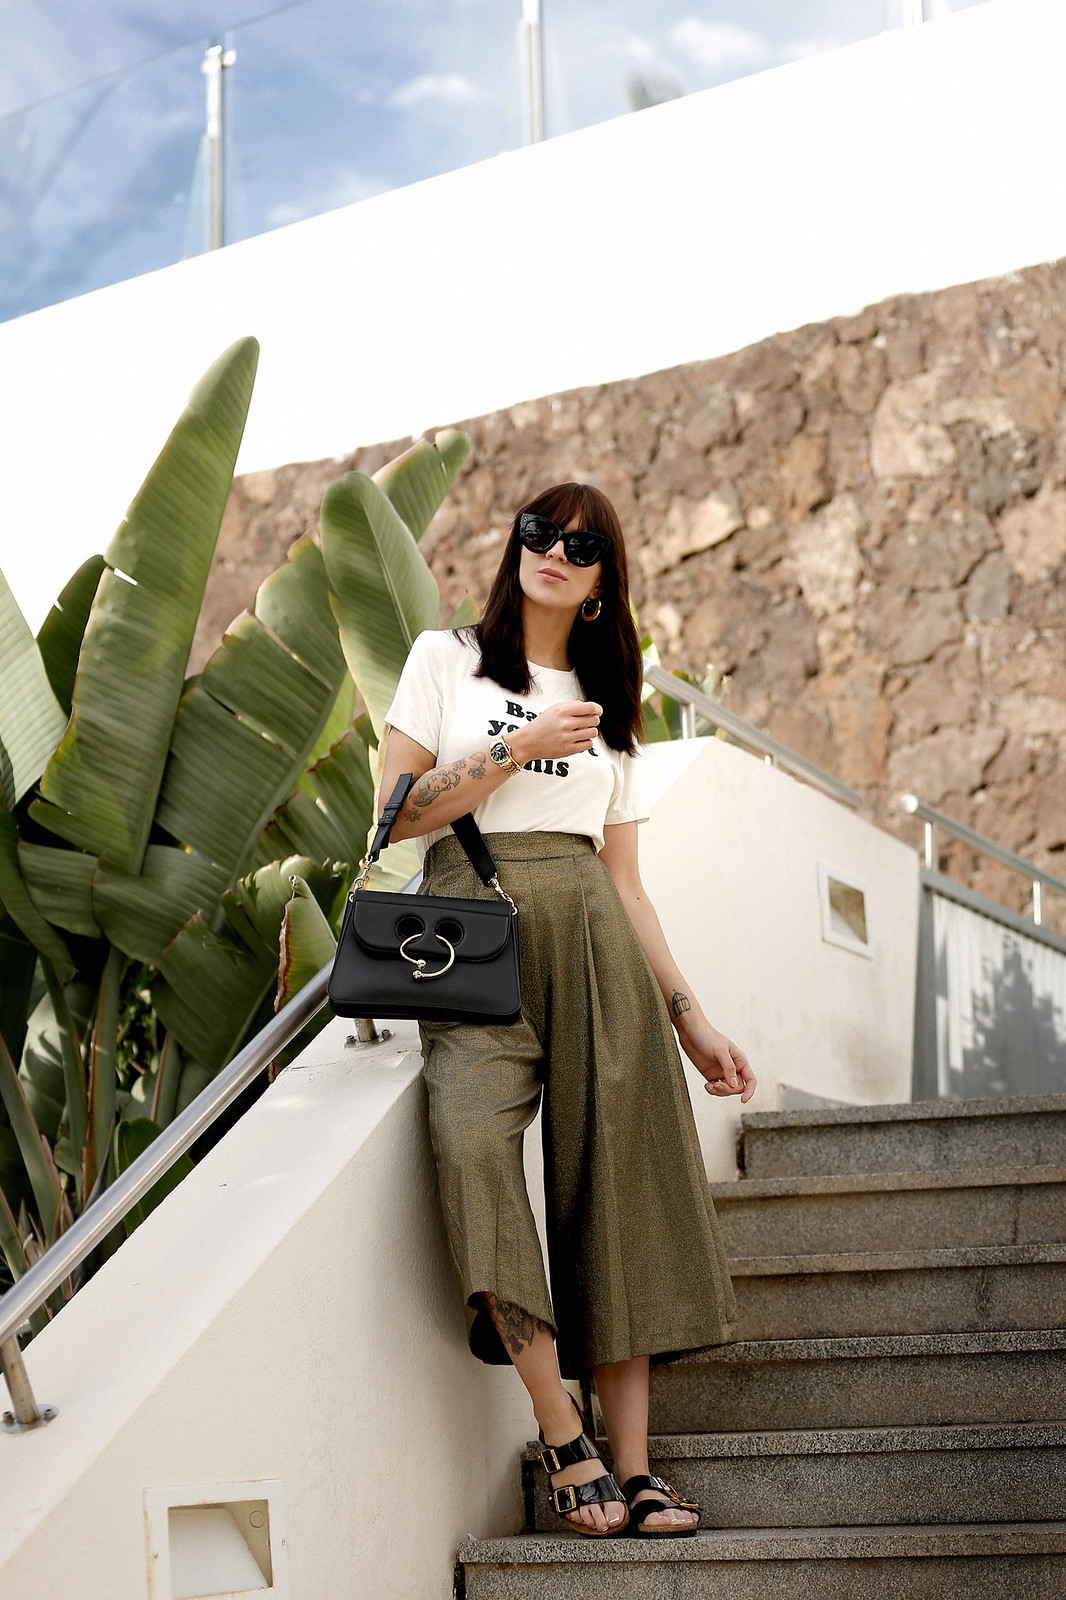 outfit statement print shirt quote cute bangs brunette holiday travel banana leaf palm tree tropical culottes zara j.w.anderson pierce bag céline audrey sunglasses birkenstock sandals cats & dogs ricarda schernus fashionblogger modeblog düsseldorf 7